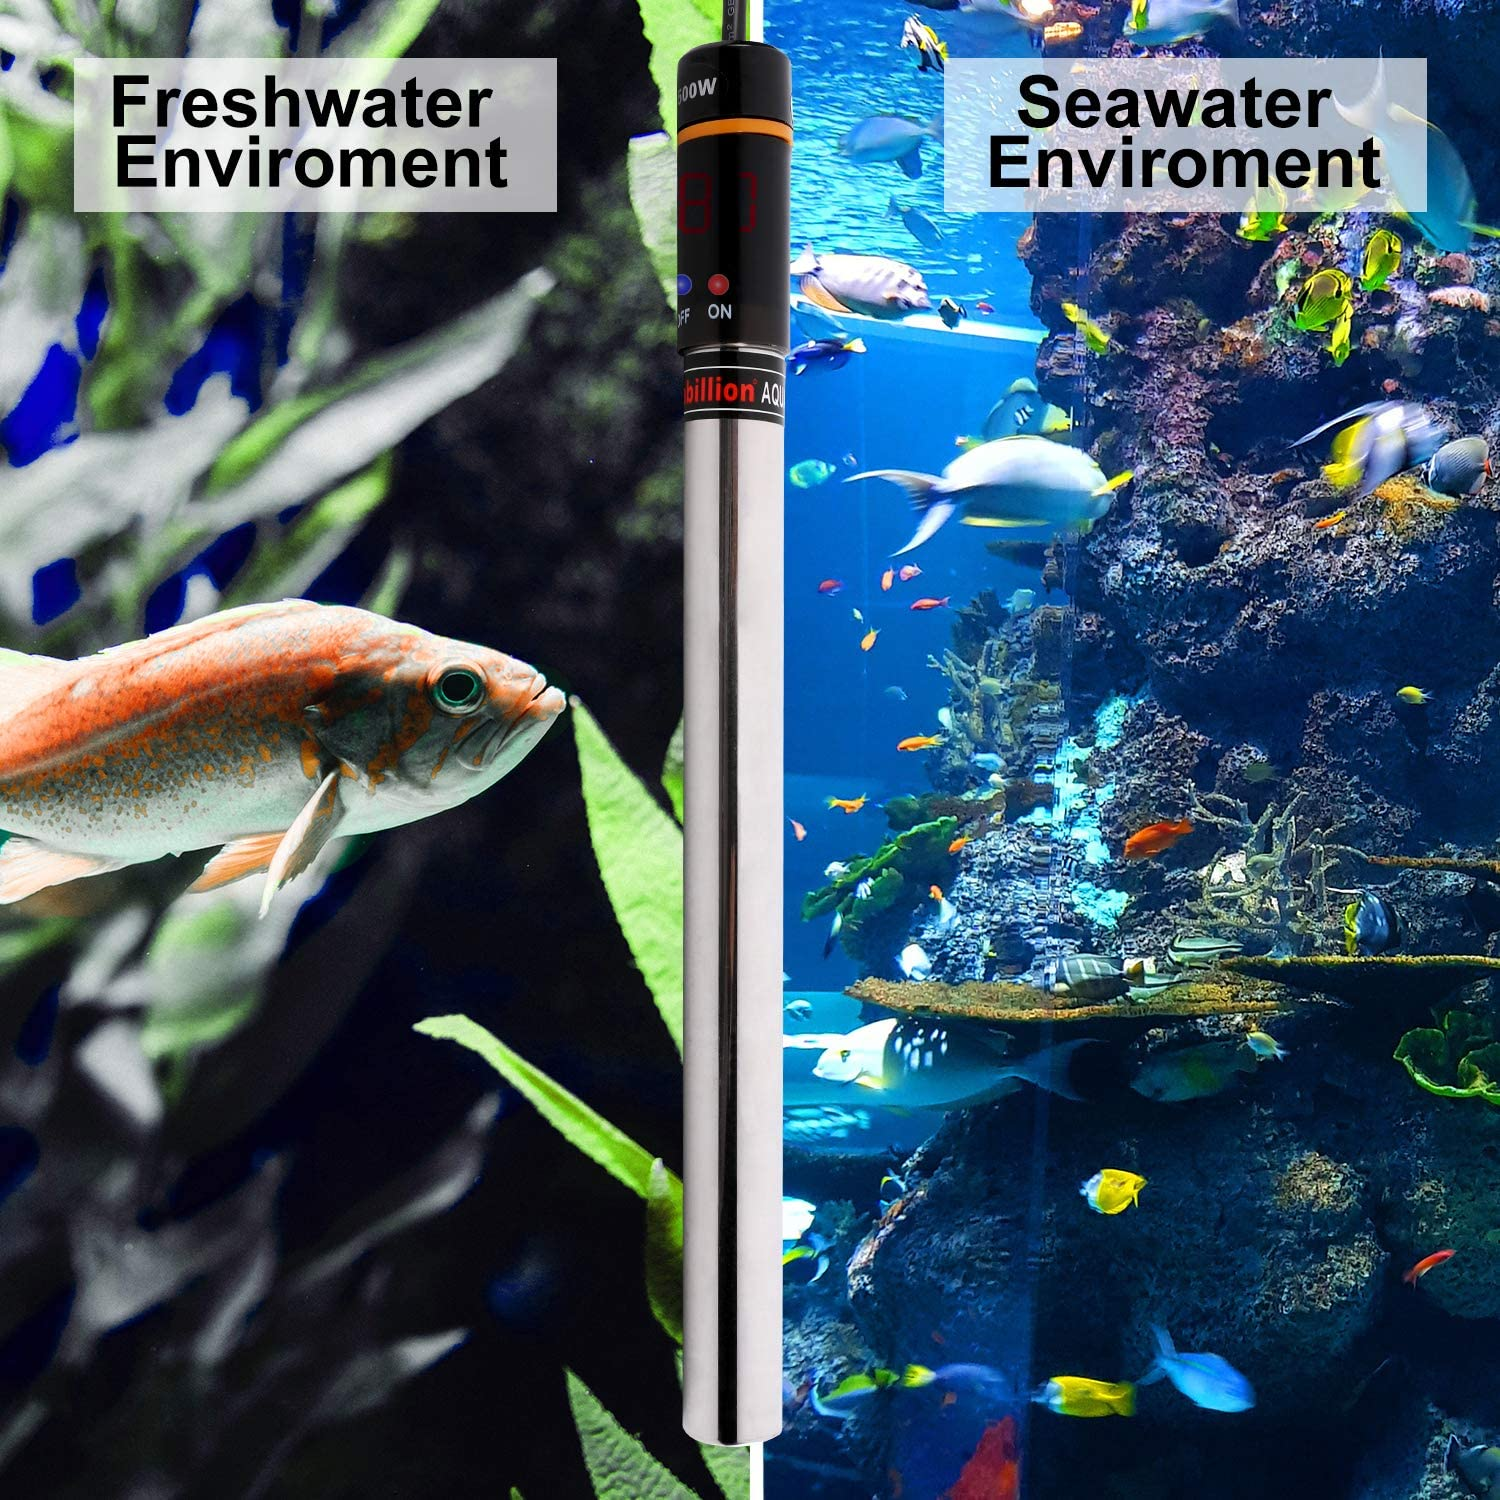 MUCH 500W Aquarium Heater Auto Thermostat Submersible Titanium Fish Tank Heaters with Intelligent LED Temperature Display and External Temperature Controller for Saltwater or Freshwater 70-80 Gallon